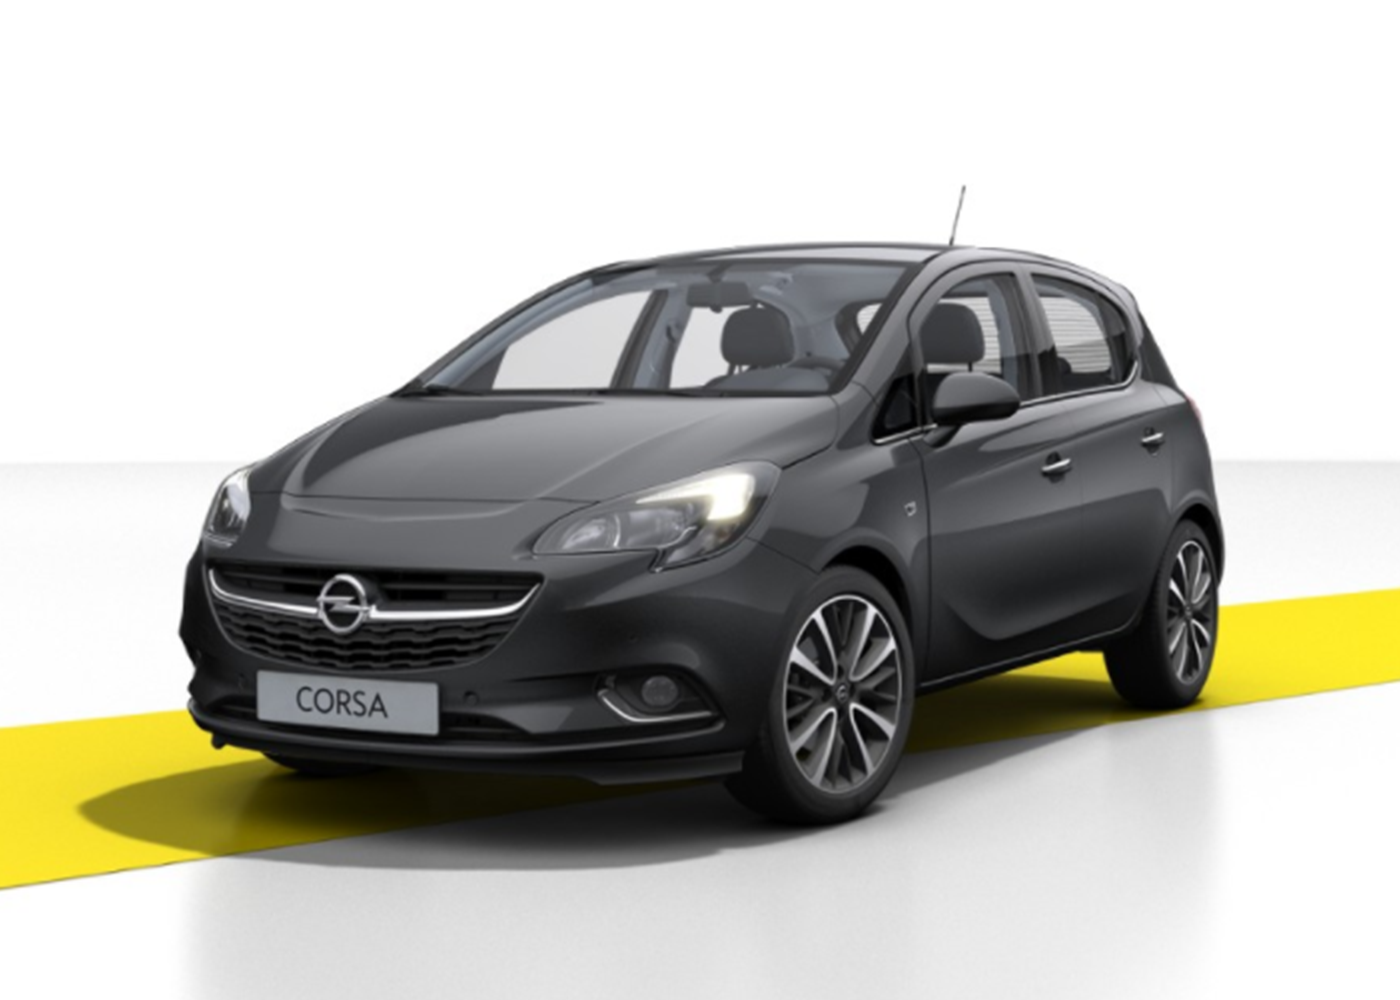 opel corsa 1 3 cdti ecoflex 95cv start stop 5 porte innovation son of a gun grey nuova a soli. Black Bedroom Furniture Sets. Home Design Ideas